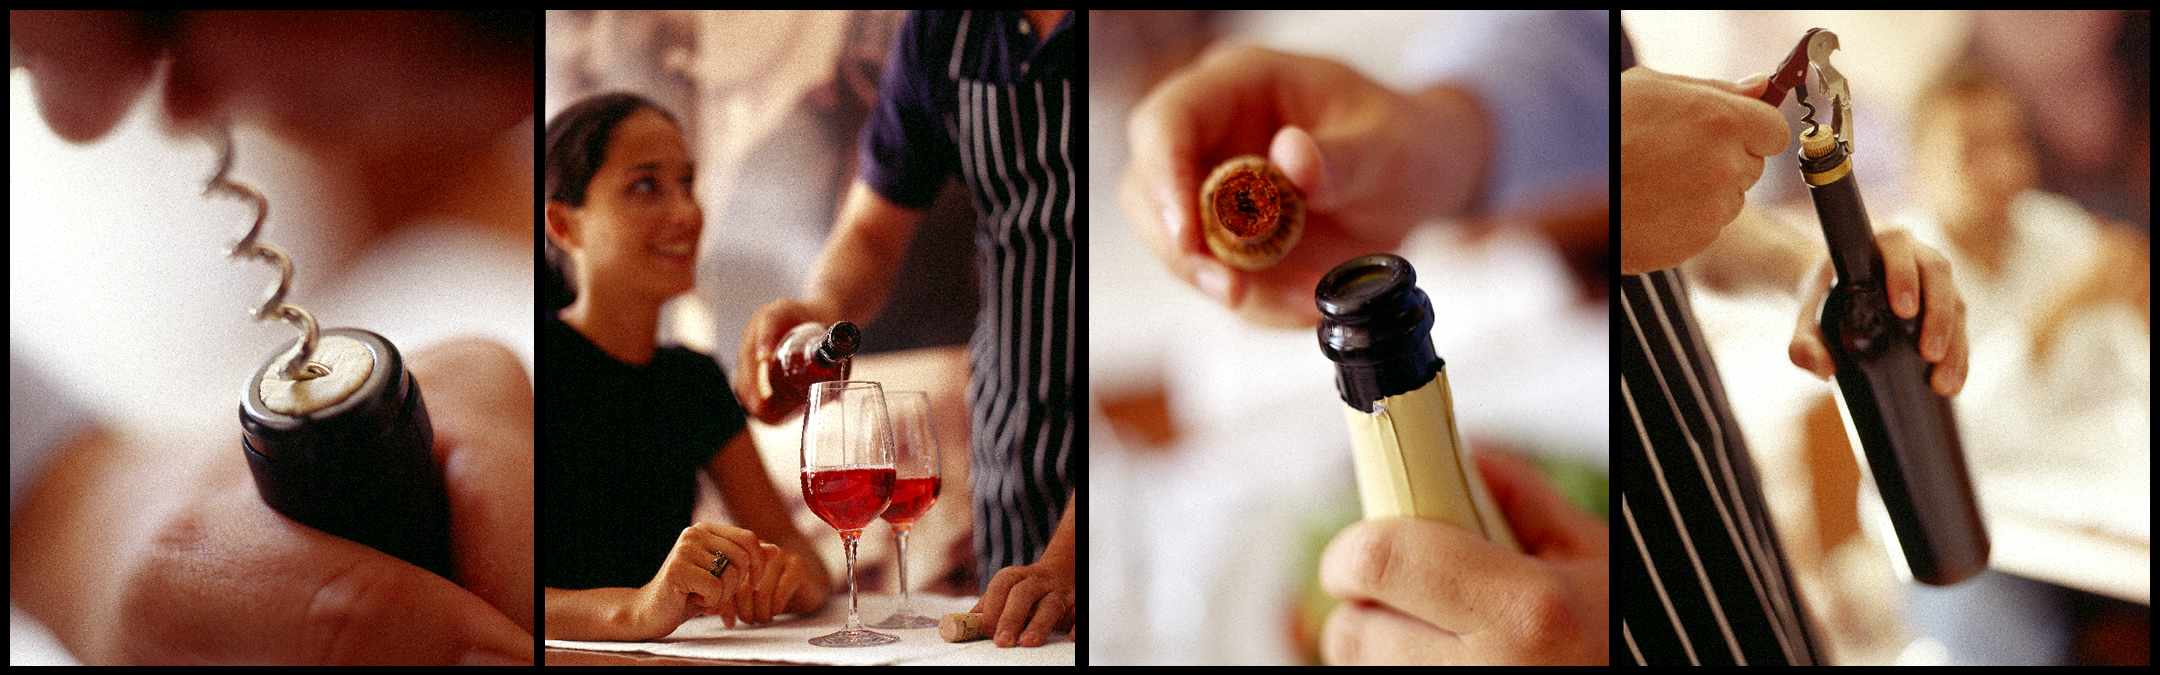 Cork Quality Council Supports the Wine Community